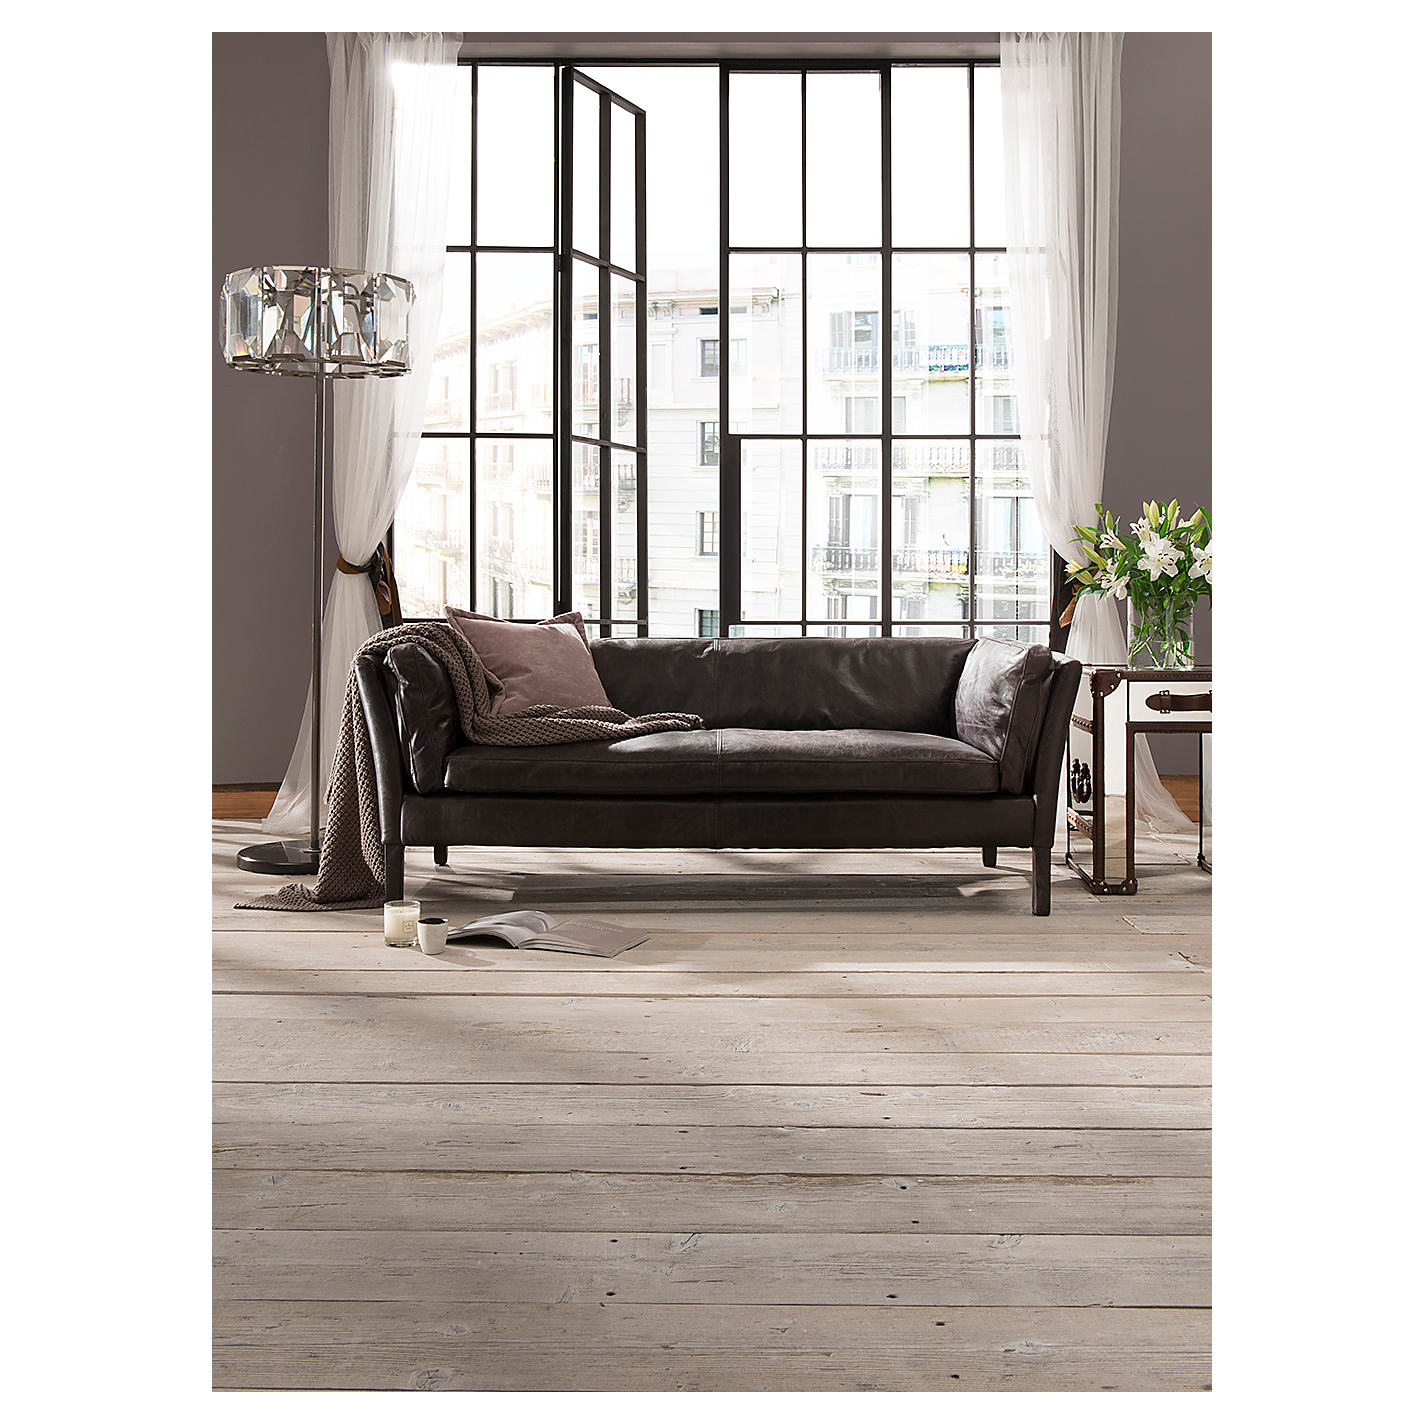 ... Buy Halo Groucho Medium Aniline Leather Sofa Online At Johnlewis.com